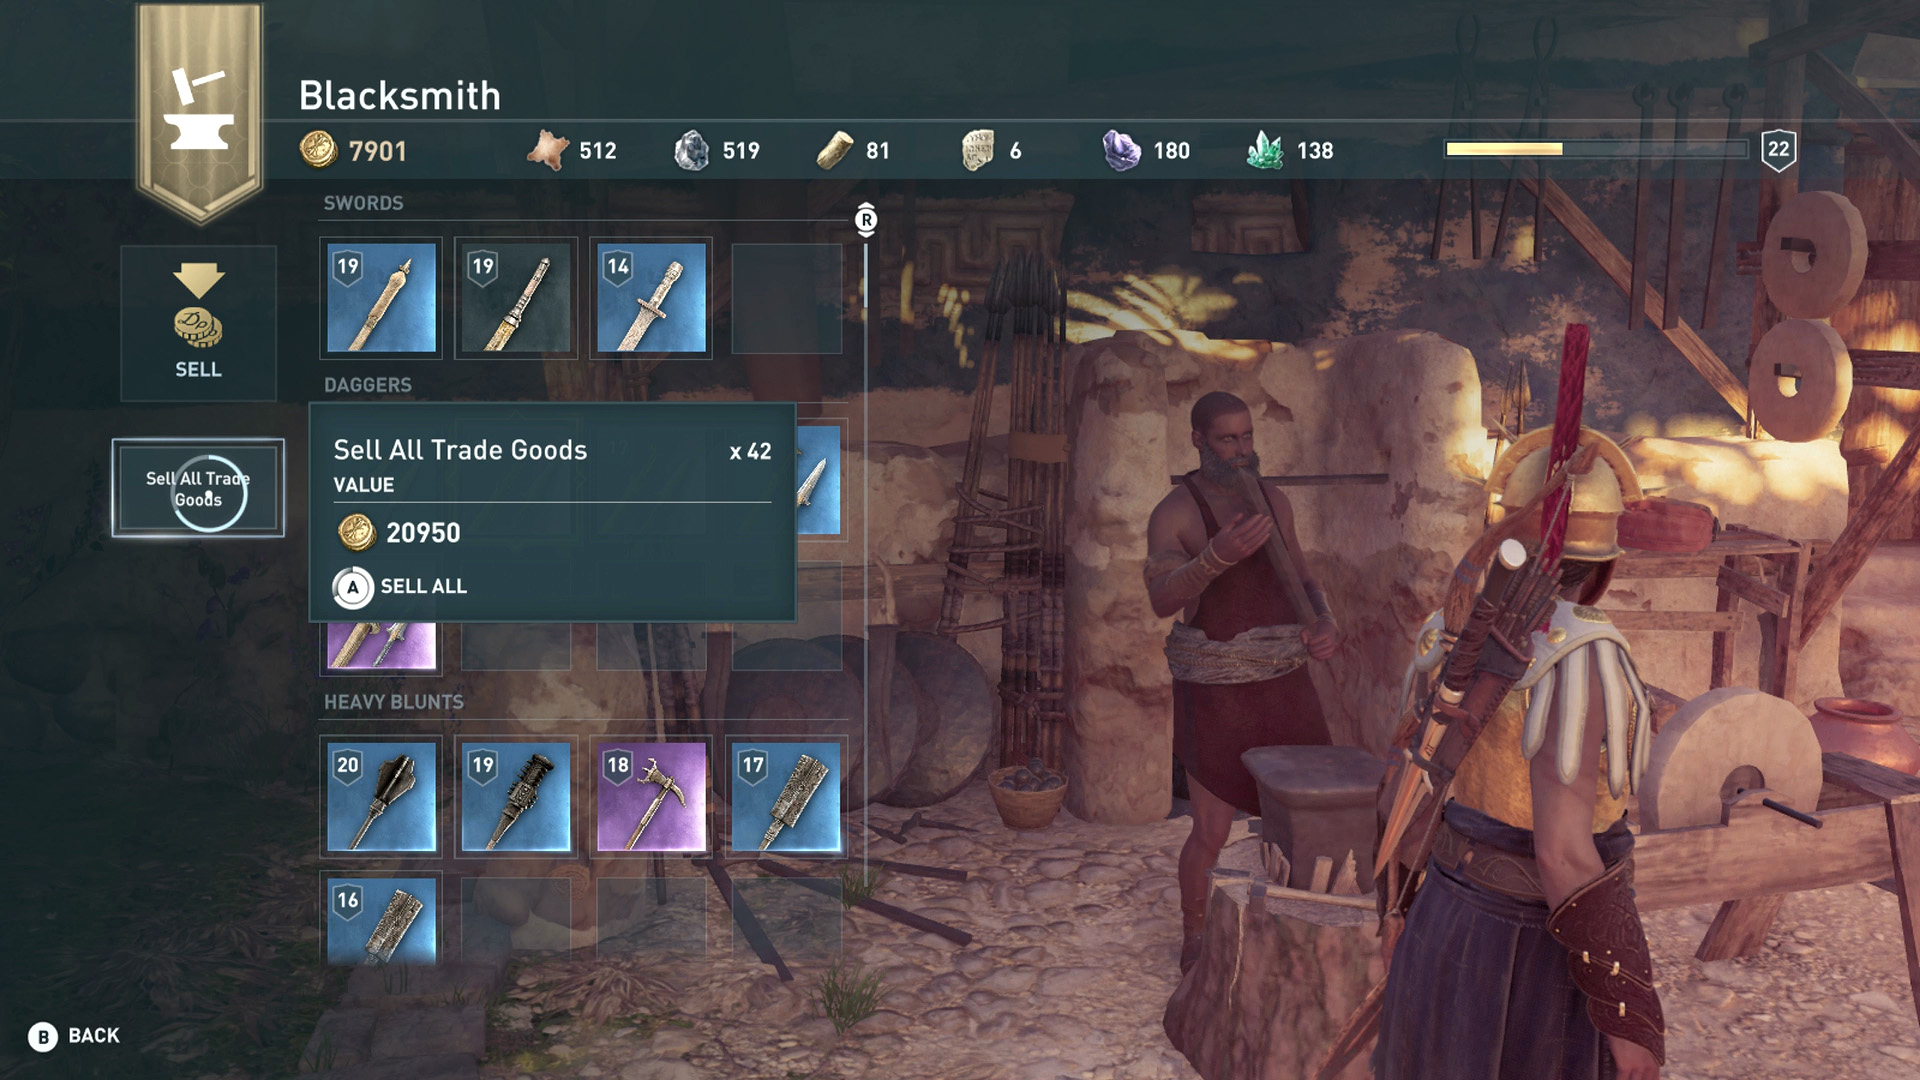 Assassin's Creed Odyssey money: how to make lots of money quickly